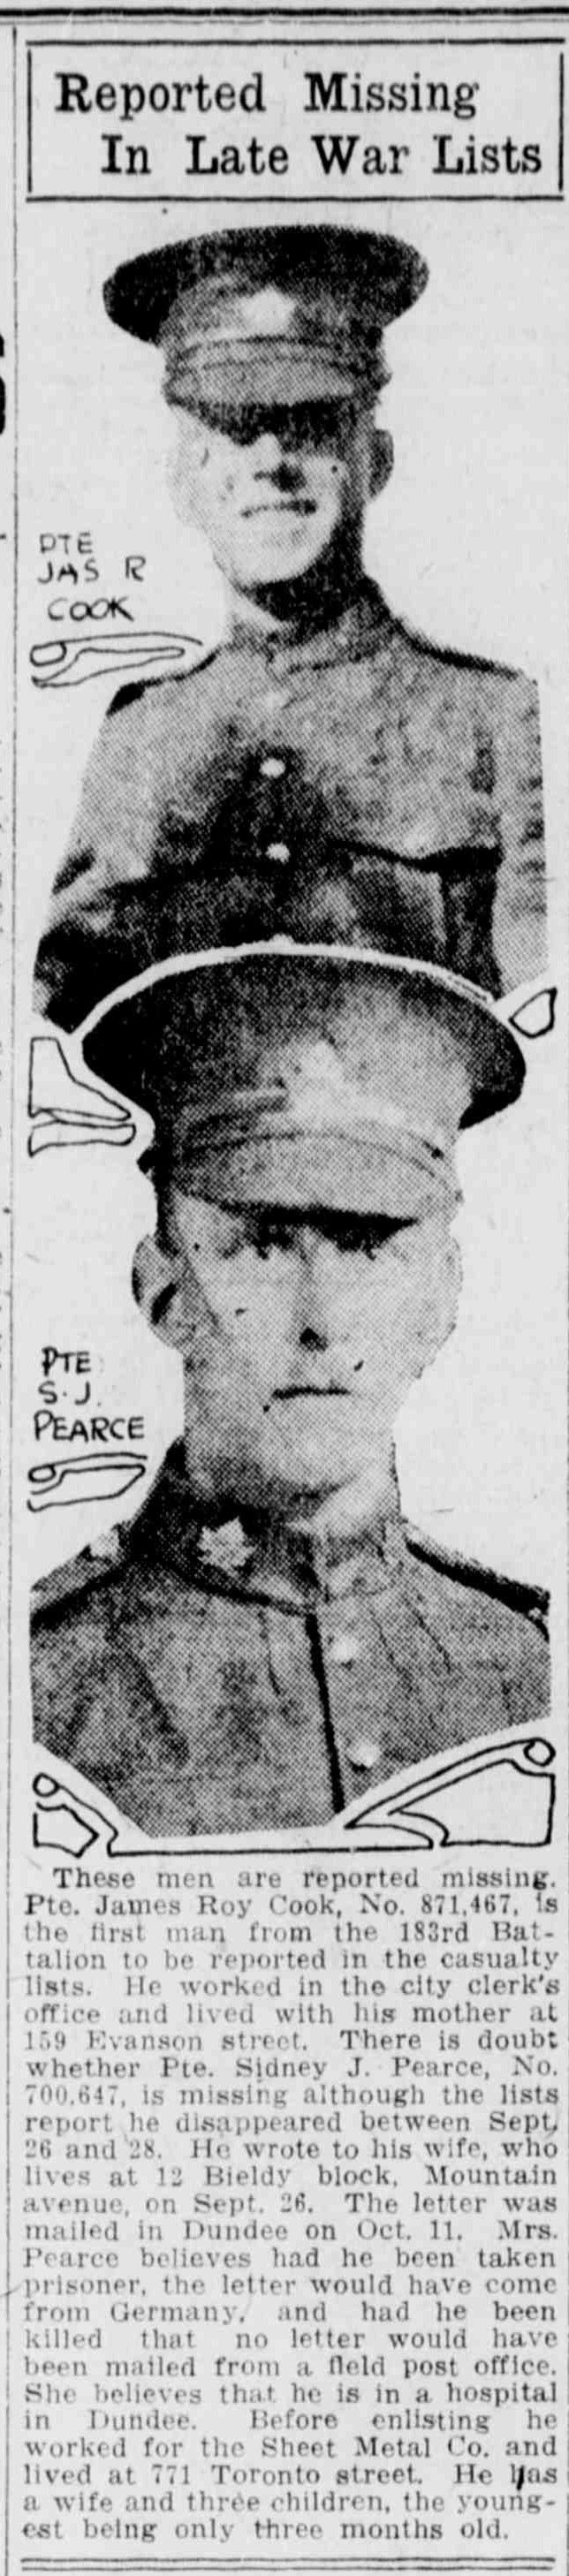 Newspaper Clipping– Image Source: The Winnipeg Evening Tribune, 1916-11-08 (Page 5)